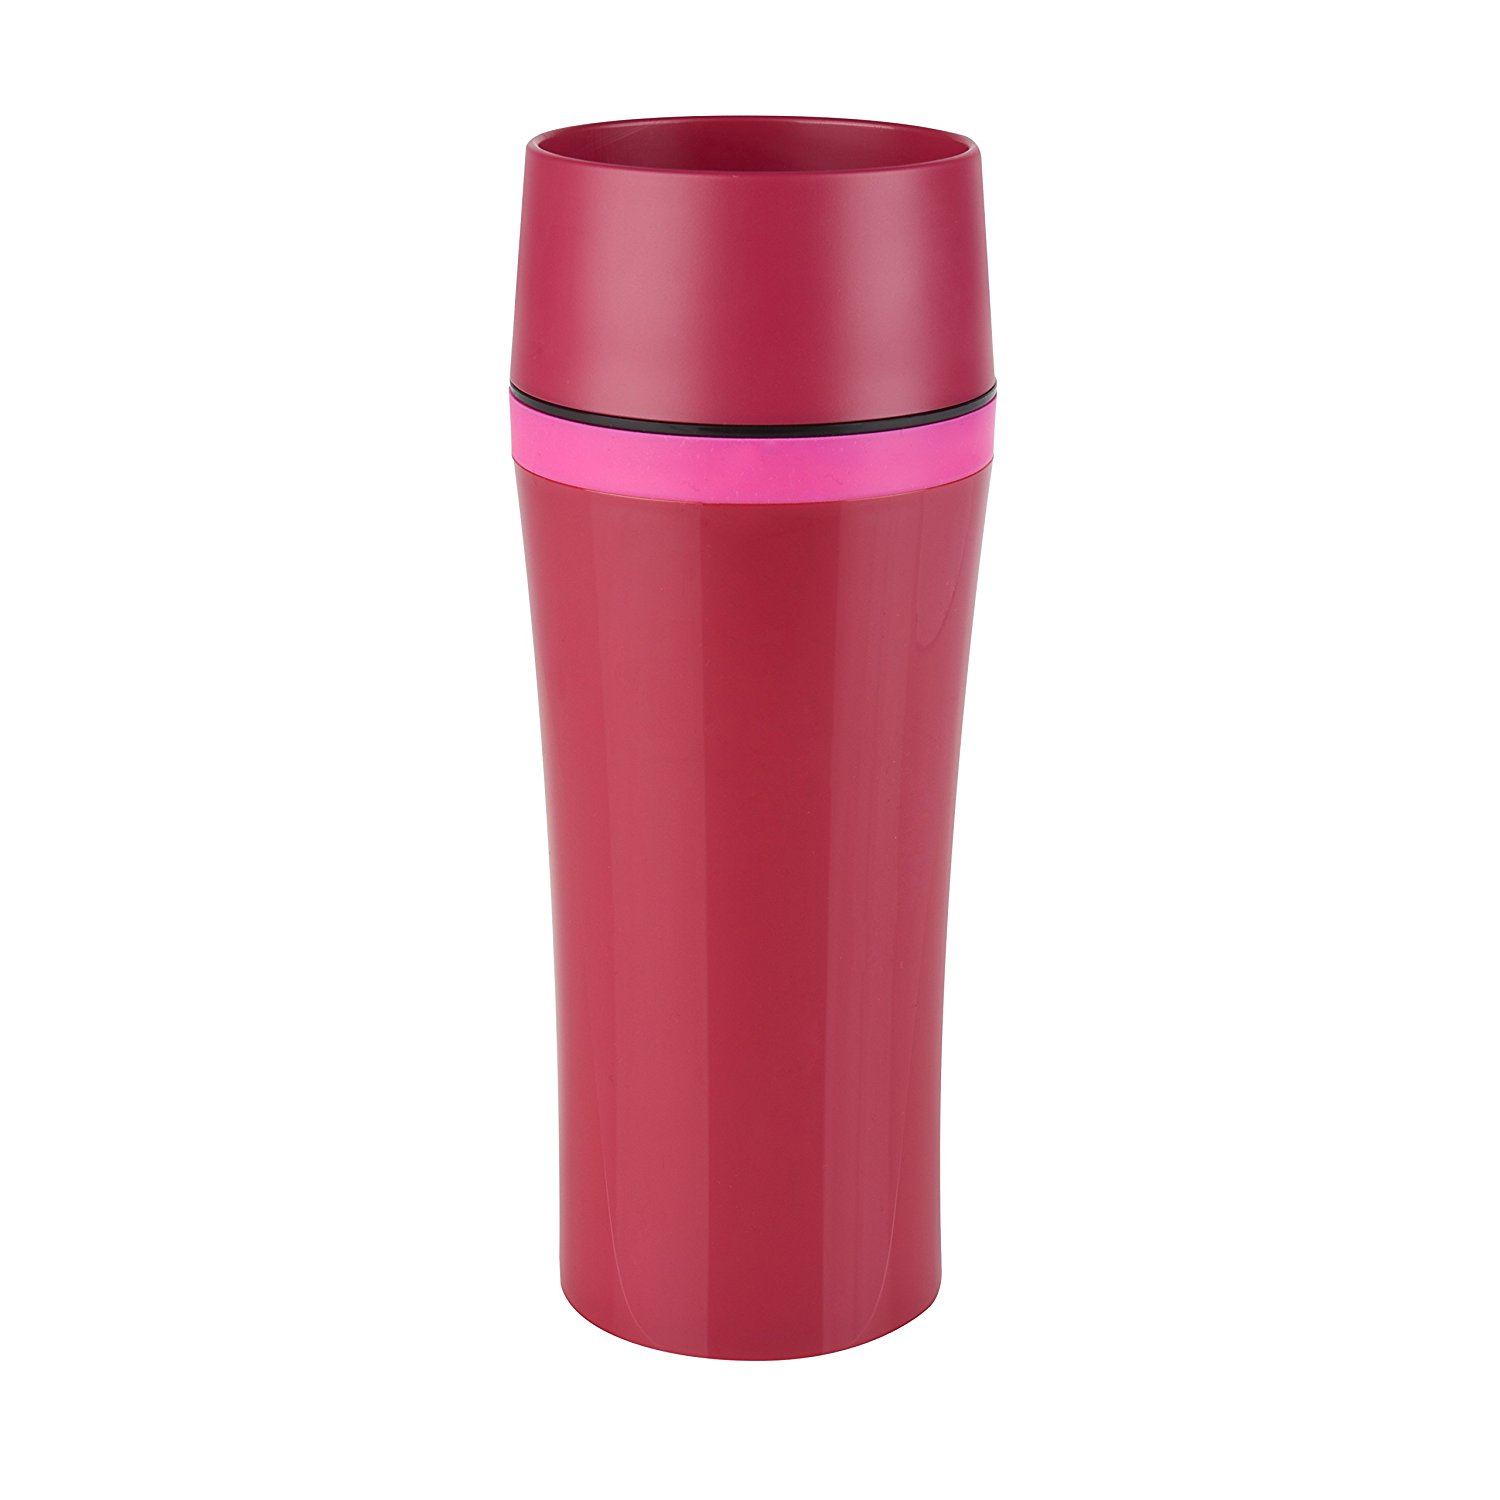 Termohrnek TRAVEL MUG FUN Quick press 360 ml malinový - Emsa